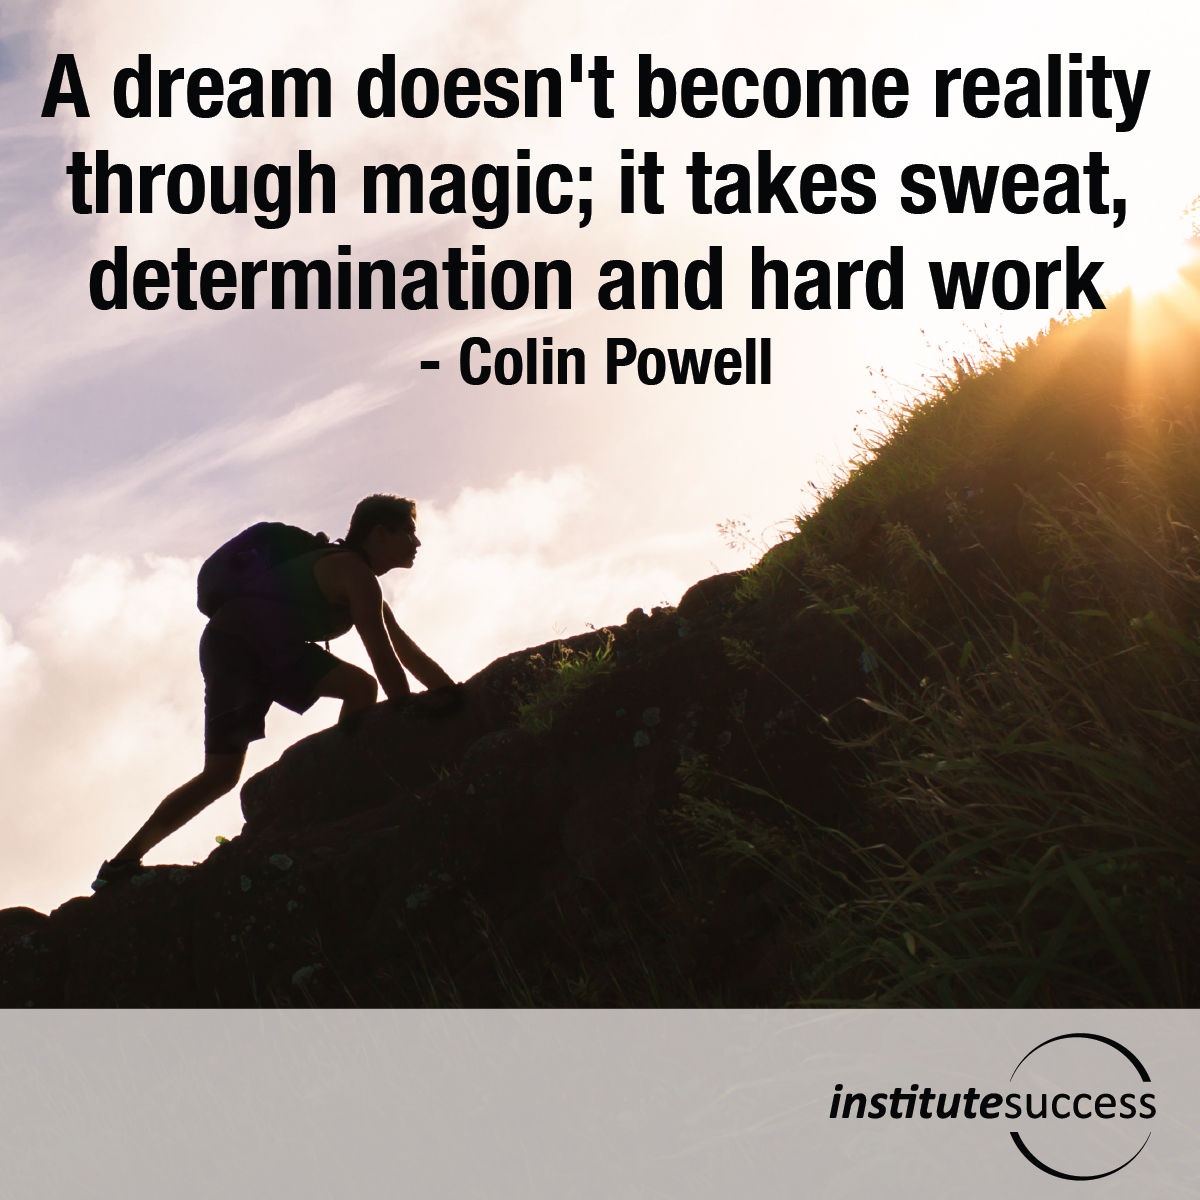 A dream doesn't become reality through magic; it takes sweat, determination and hard work – Colin Powell